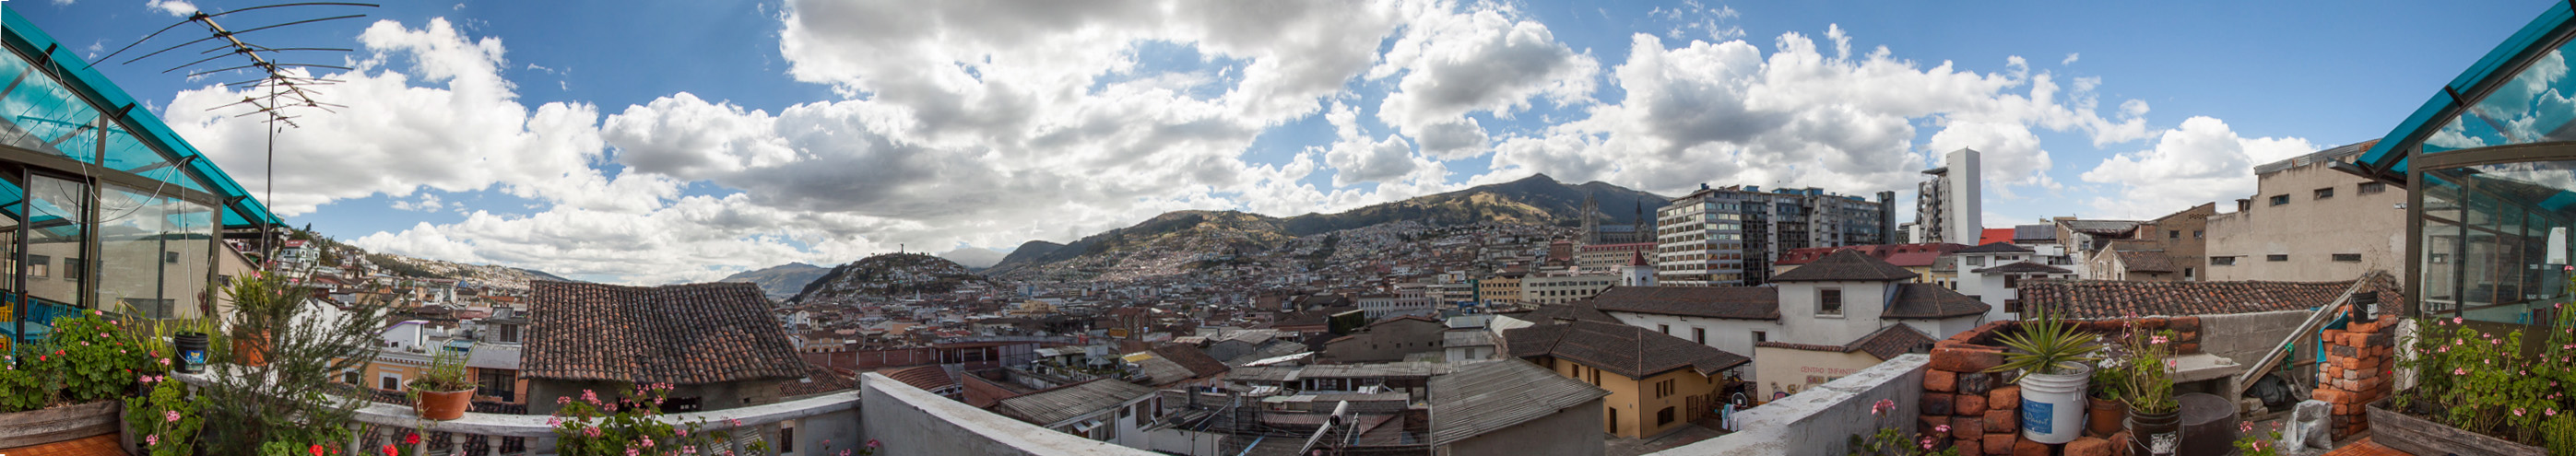 Quito skyline from our hostel rooftop terrace.